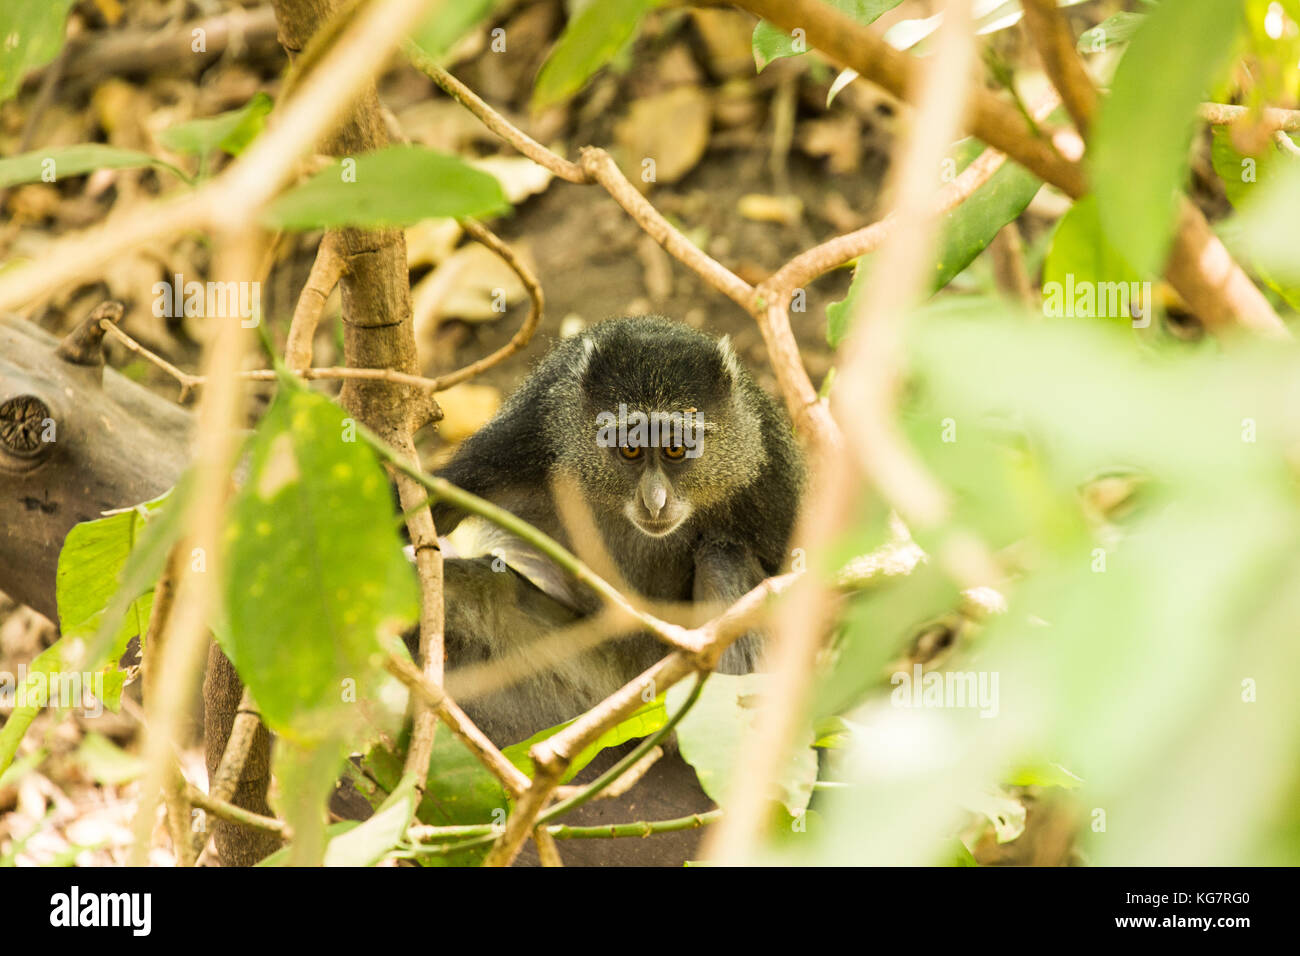 Blue Monkey peering out of the undergrowth Lake Manyara, Tanzania - Stock Image